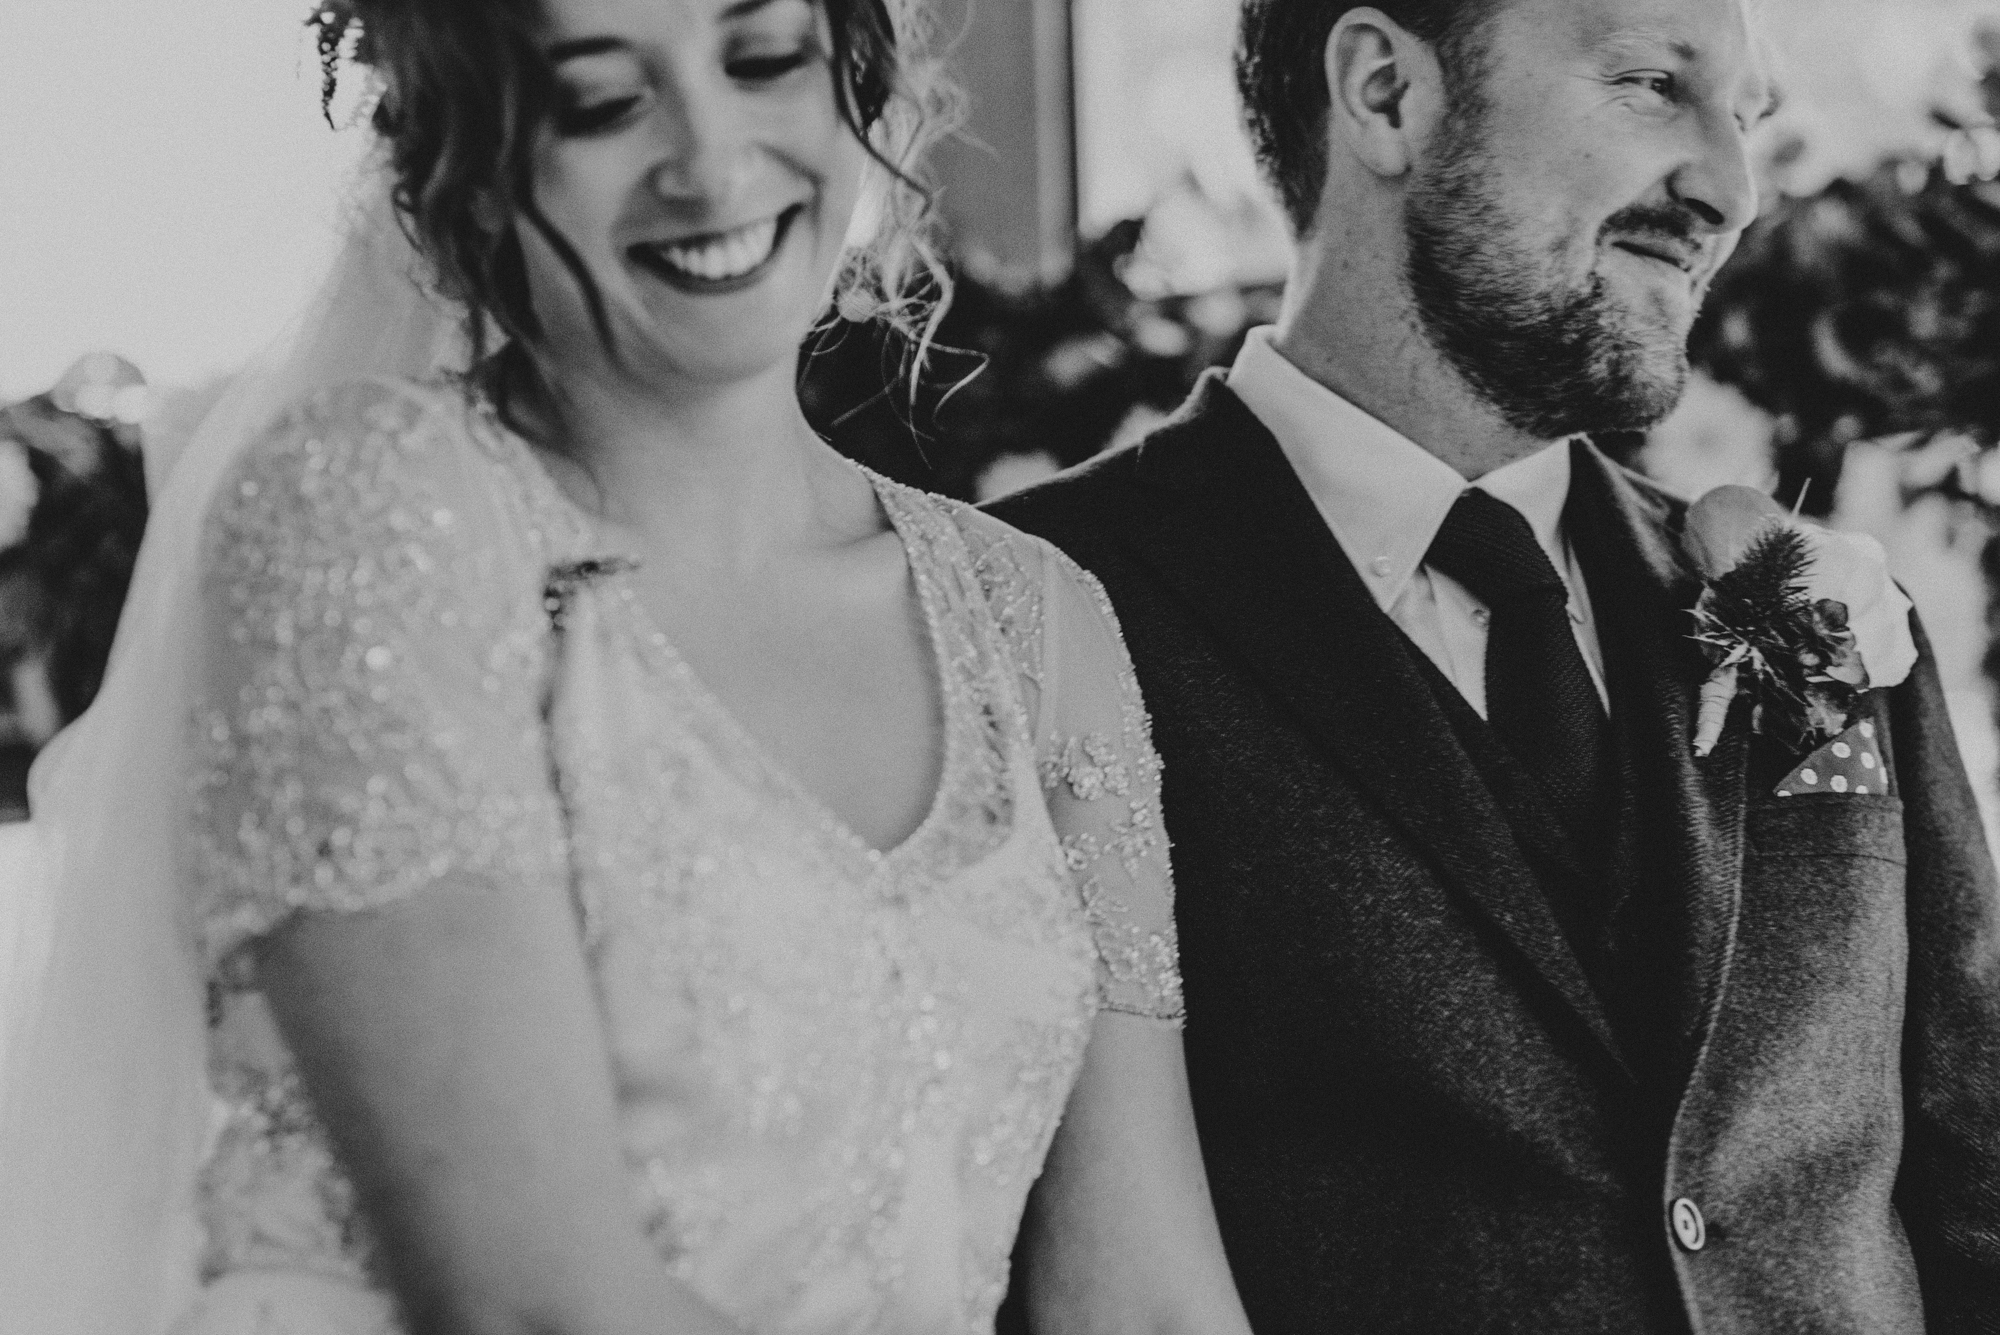 39-bride-and-groom-beautiful-wedding-photography-london